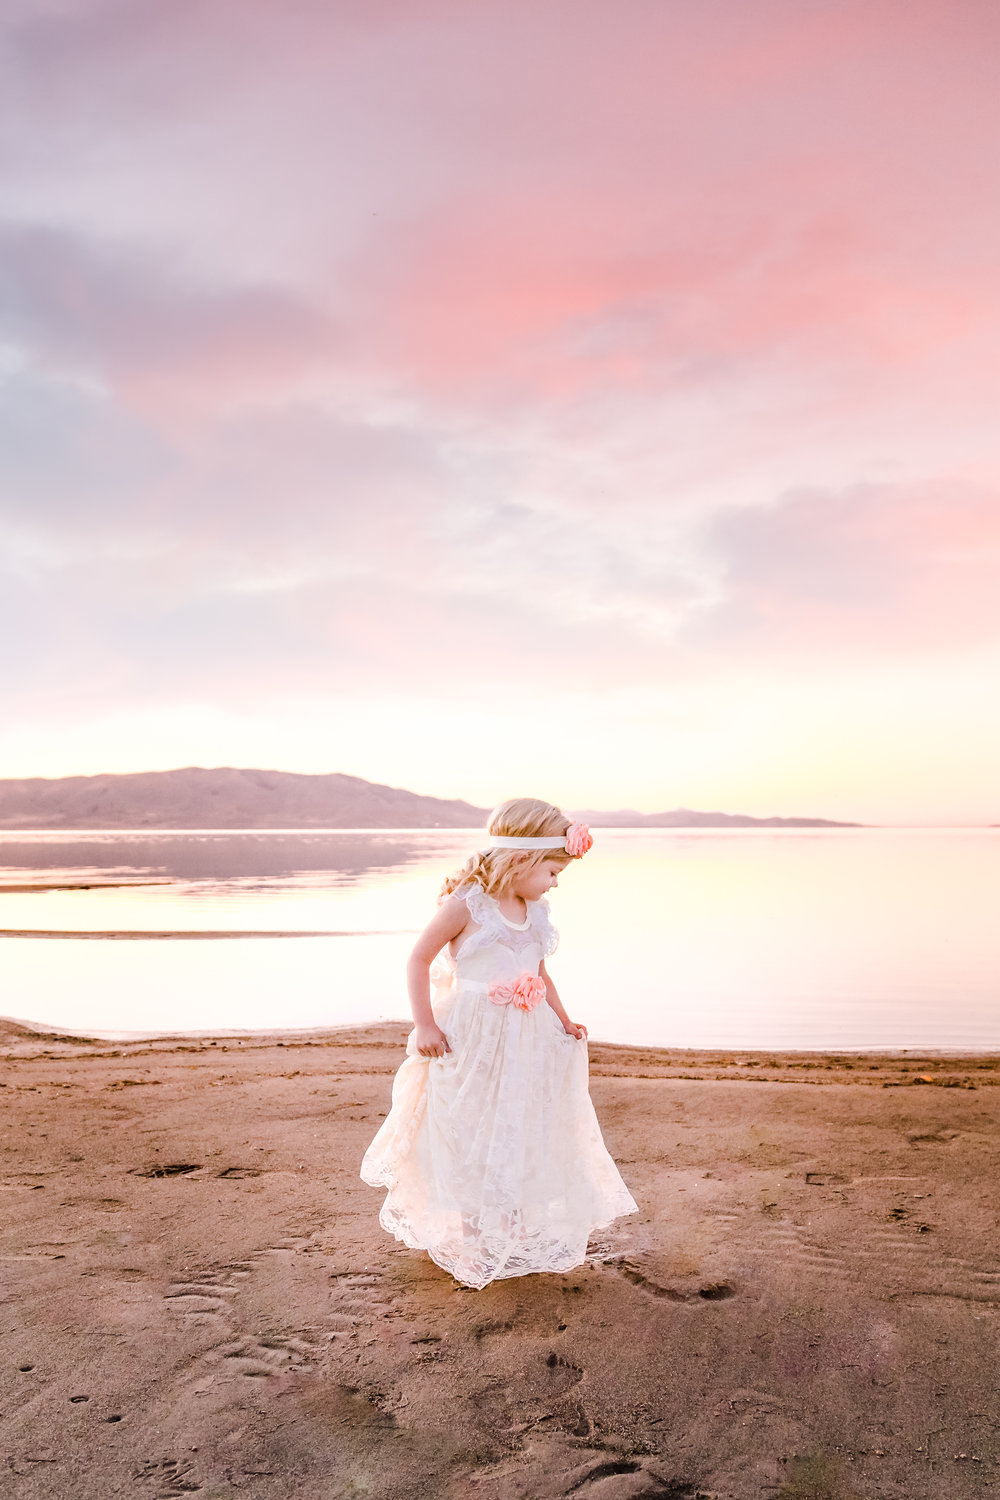 Girl in a Lace Dress Spins on the Beach at Sunset